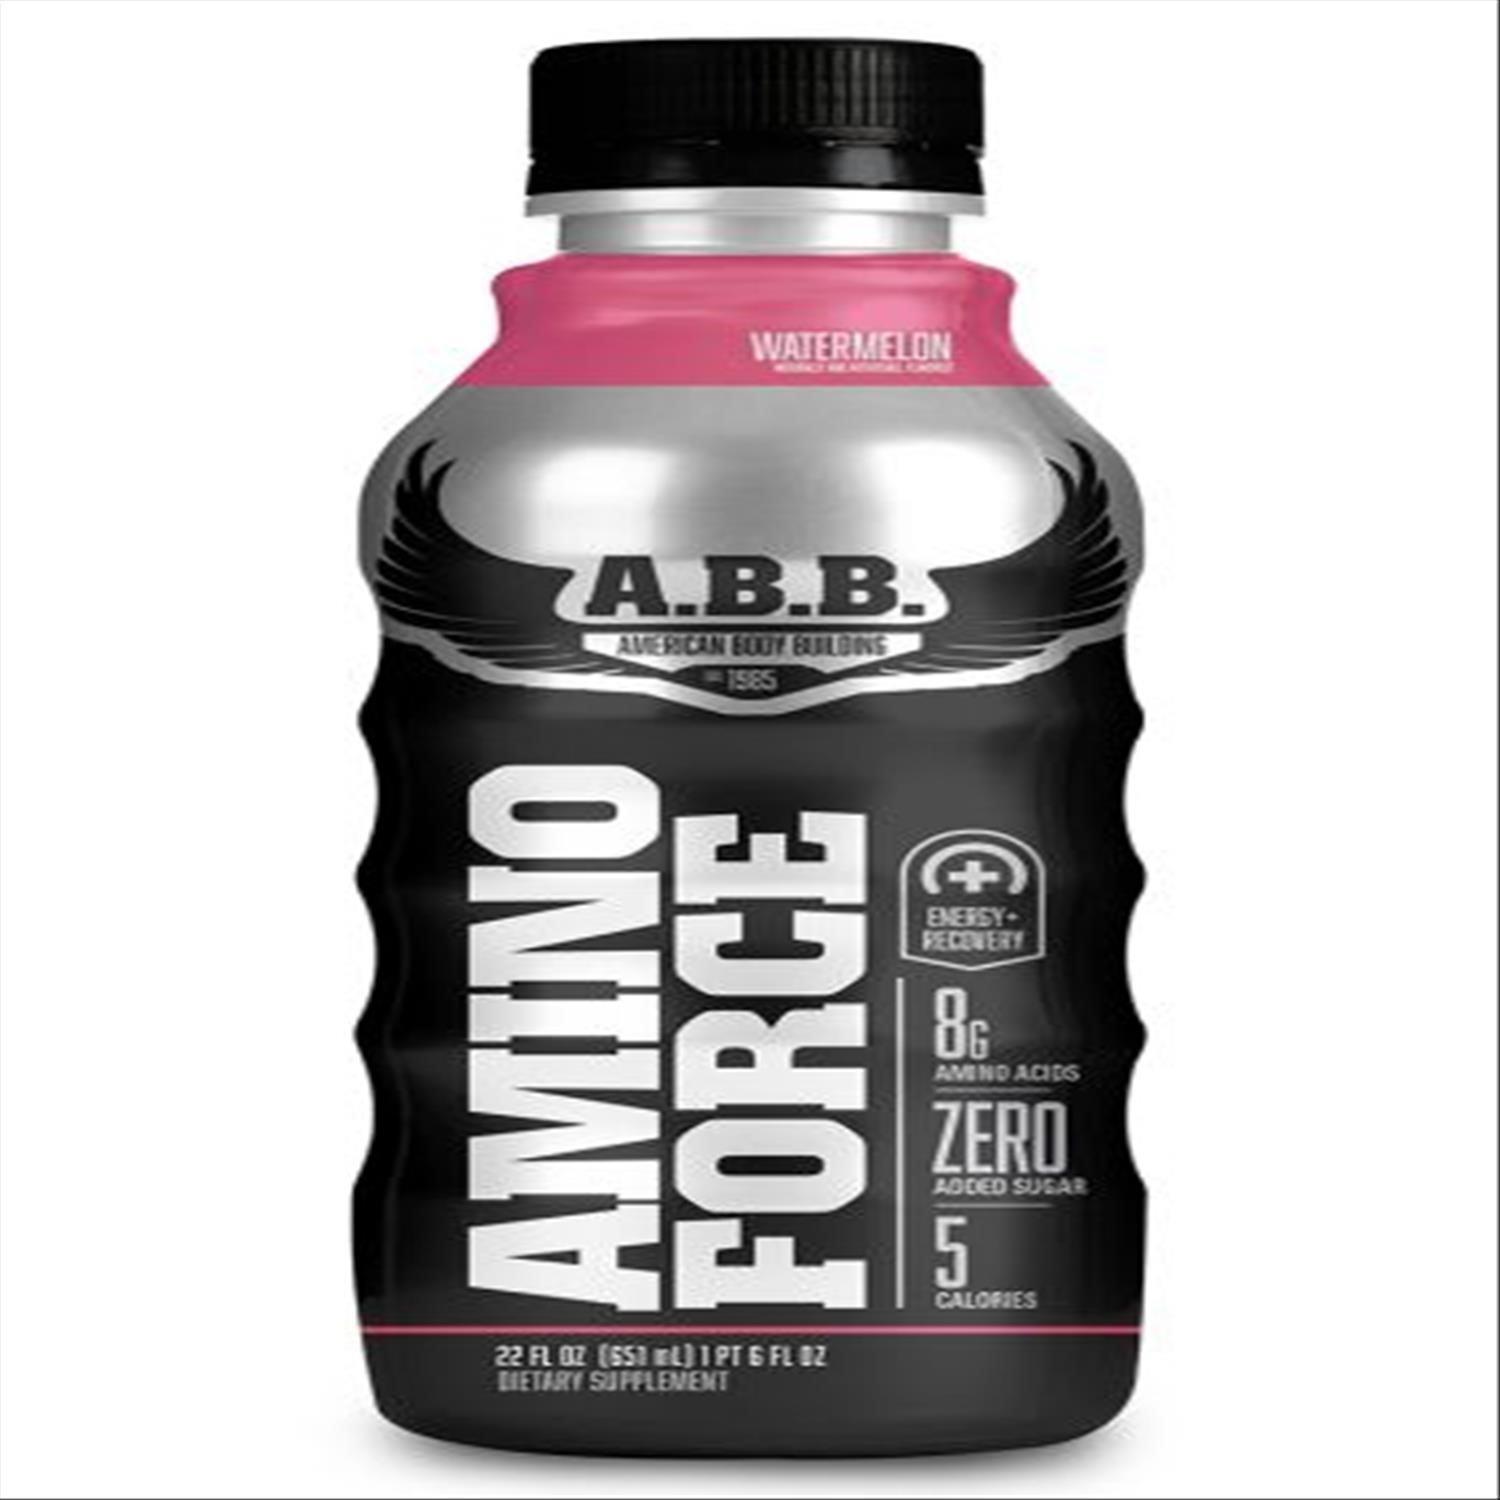 Image of A.B.B. Amino Force 22 Fl Oz Bottles, Watermelon, Pack of 12